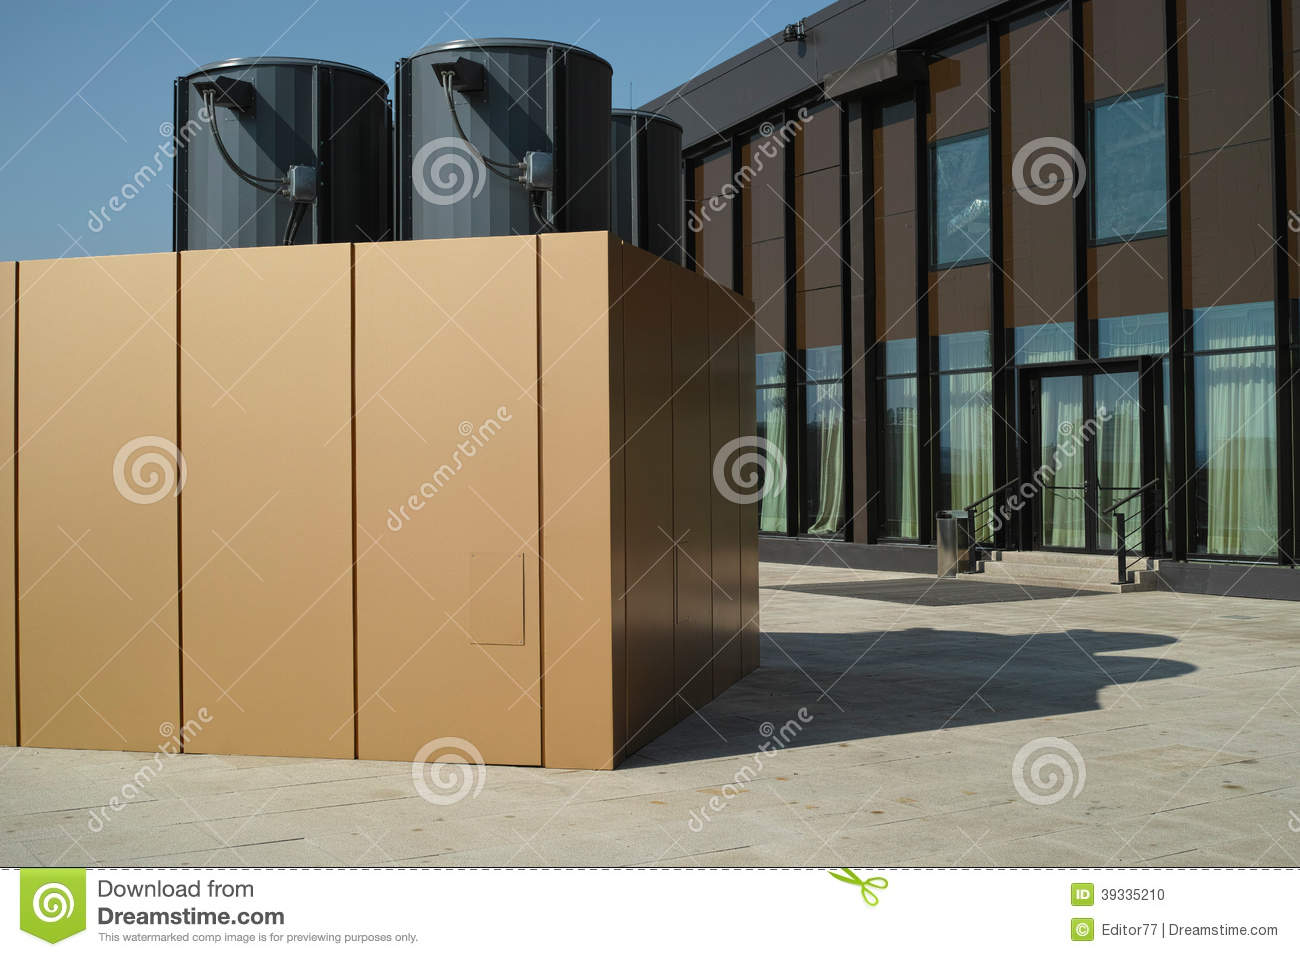 Air Conditioning On The Building Roof Stock Photo Image Of